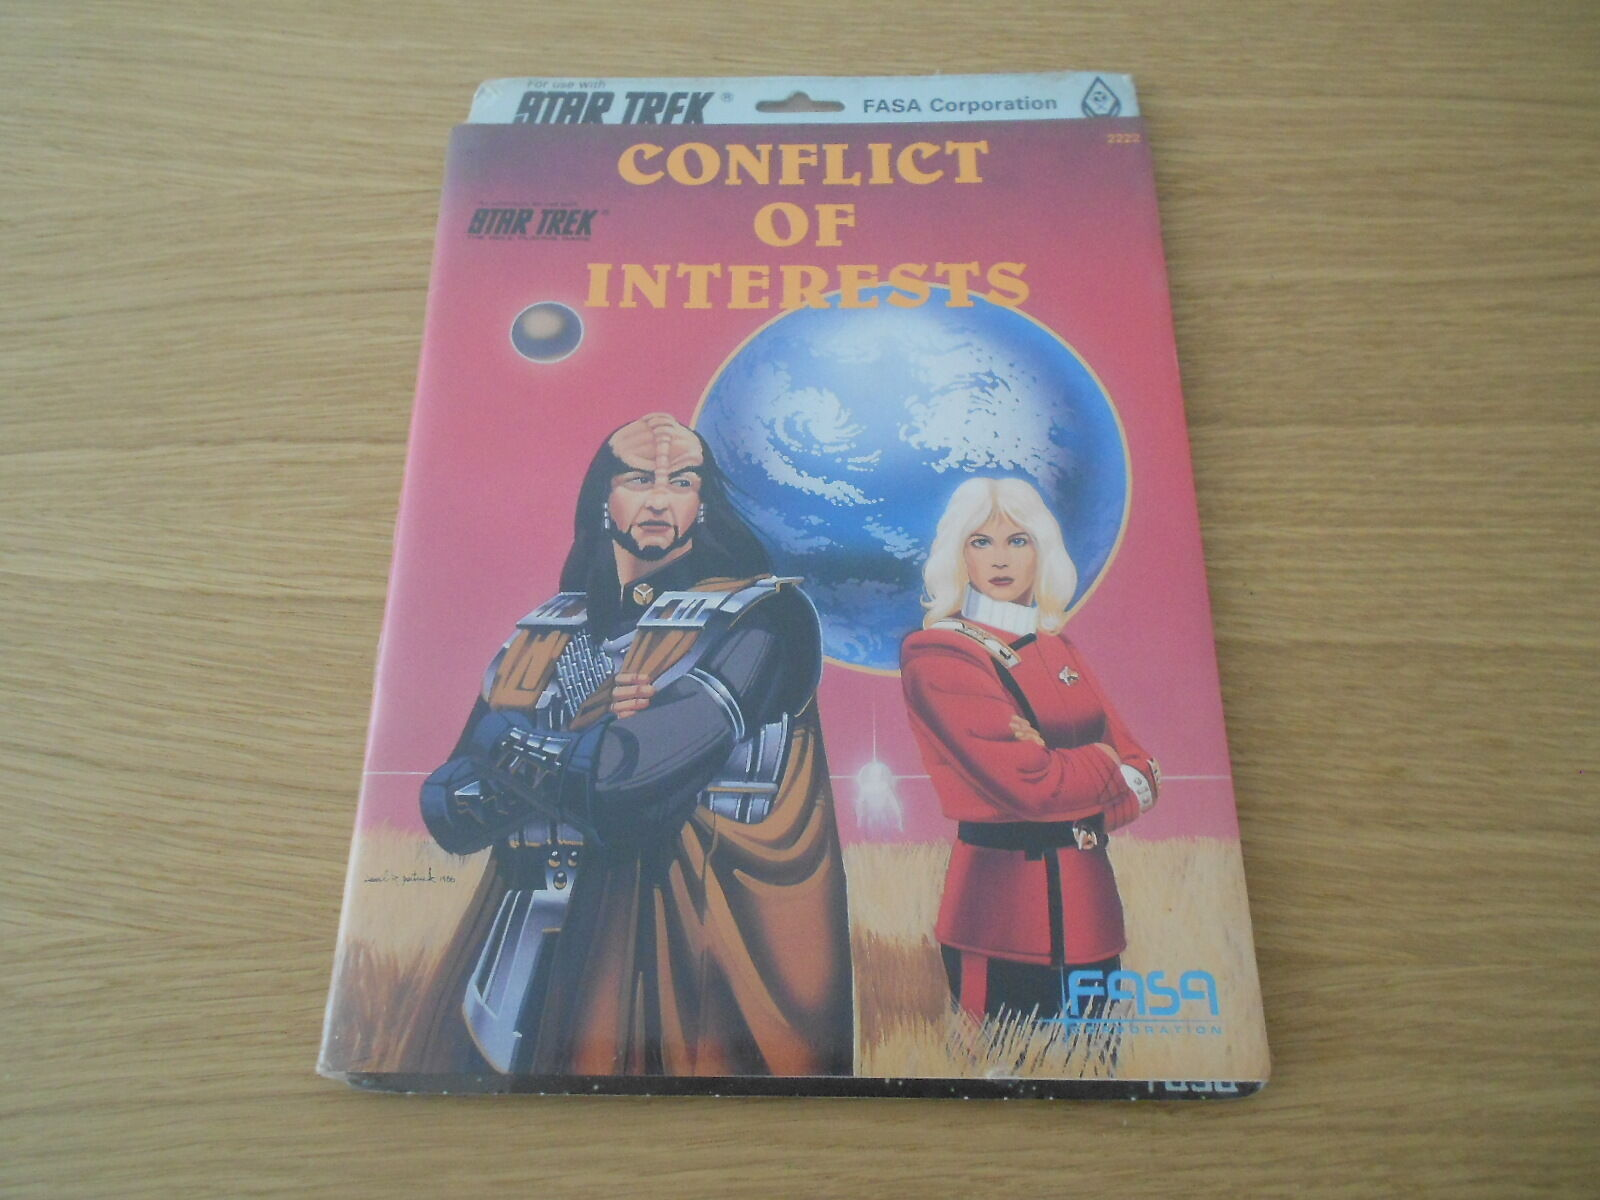 STAR TREK - Conflict of Interests - set rol - FASA 2222 RPG Sealed Condition